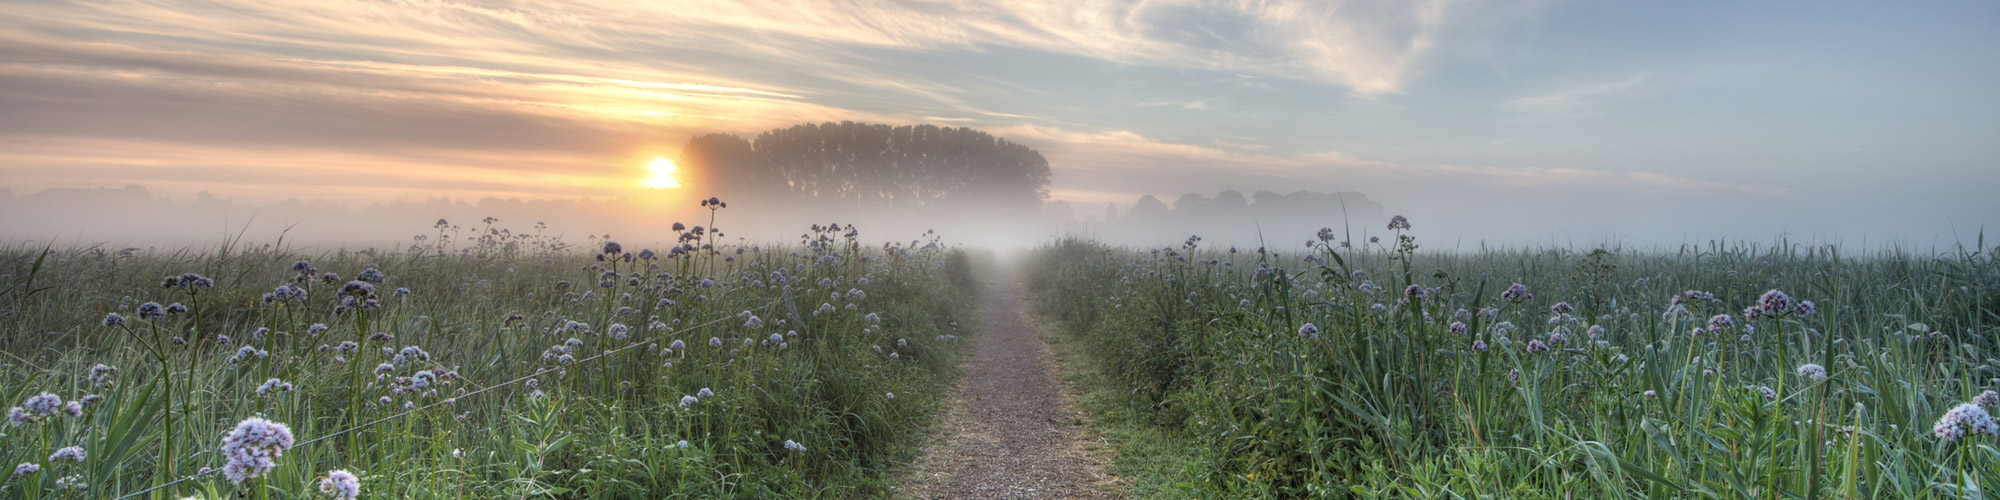 flowery and misty field at sunrise.